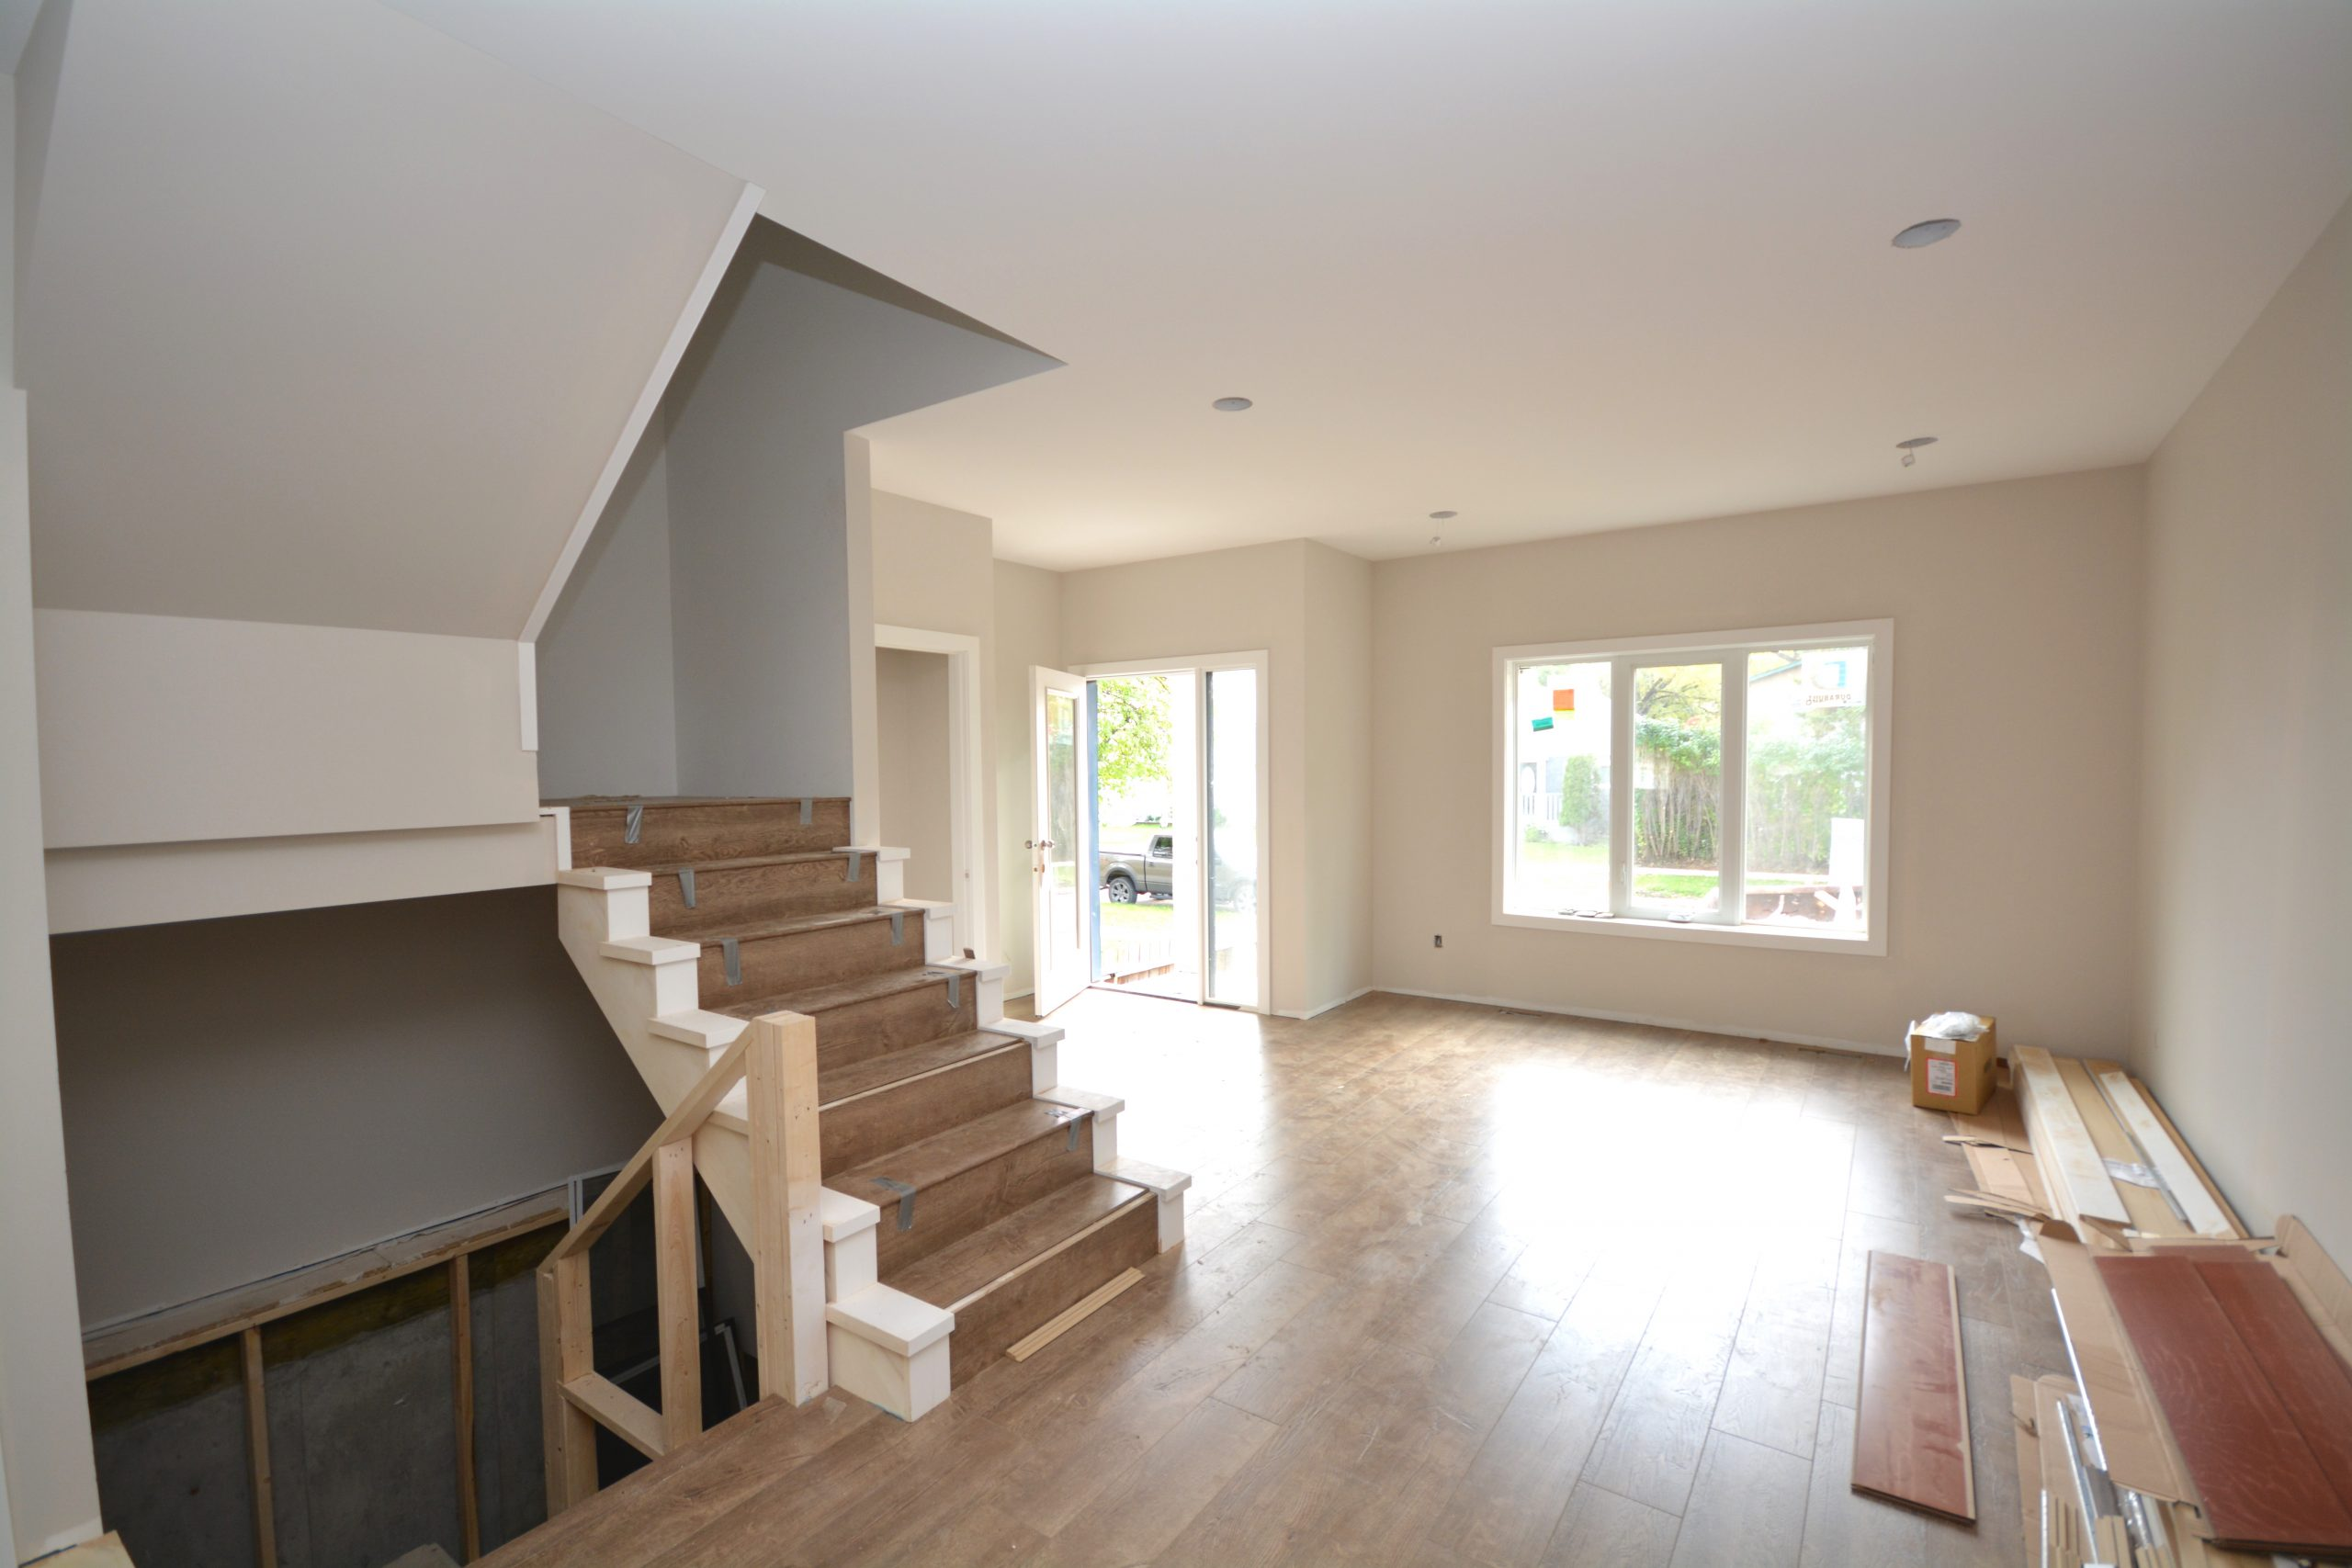 Brand new luxury home in West Fort Garry